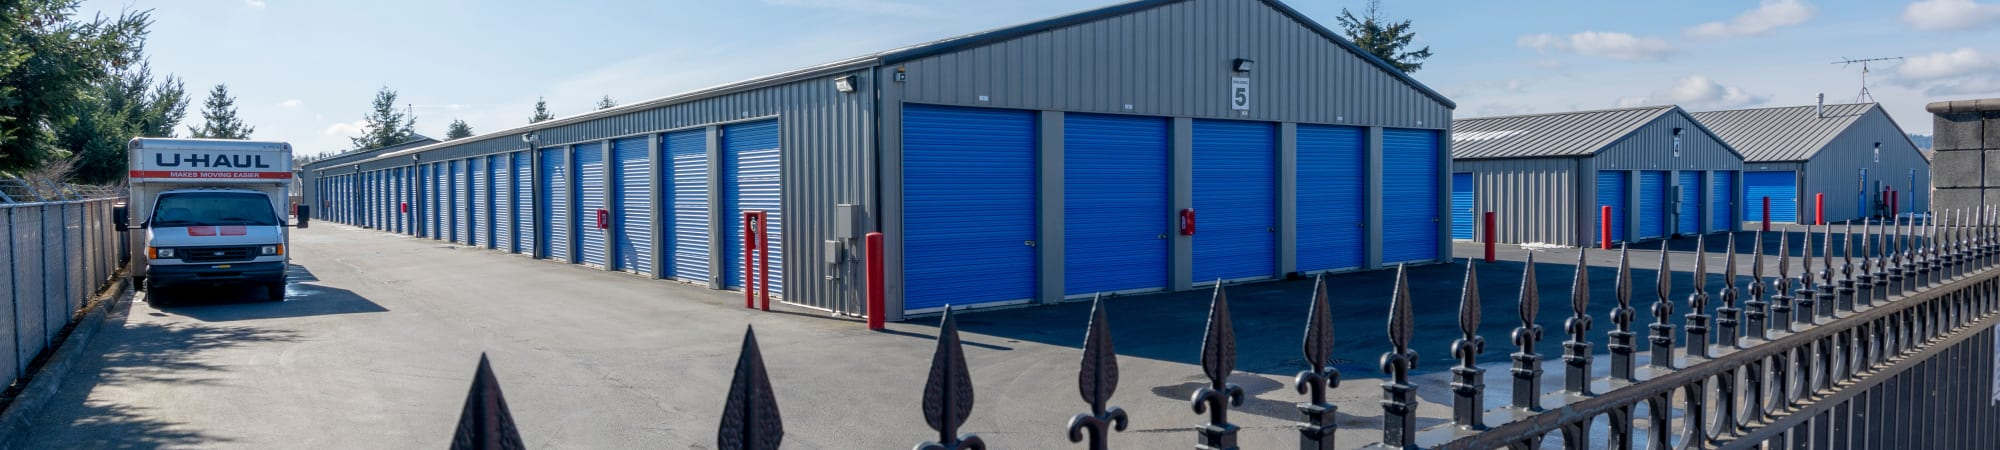 Reviews for Glacier West Self Storage in Arlington, Washington